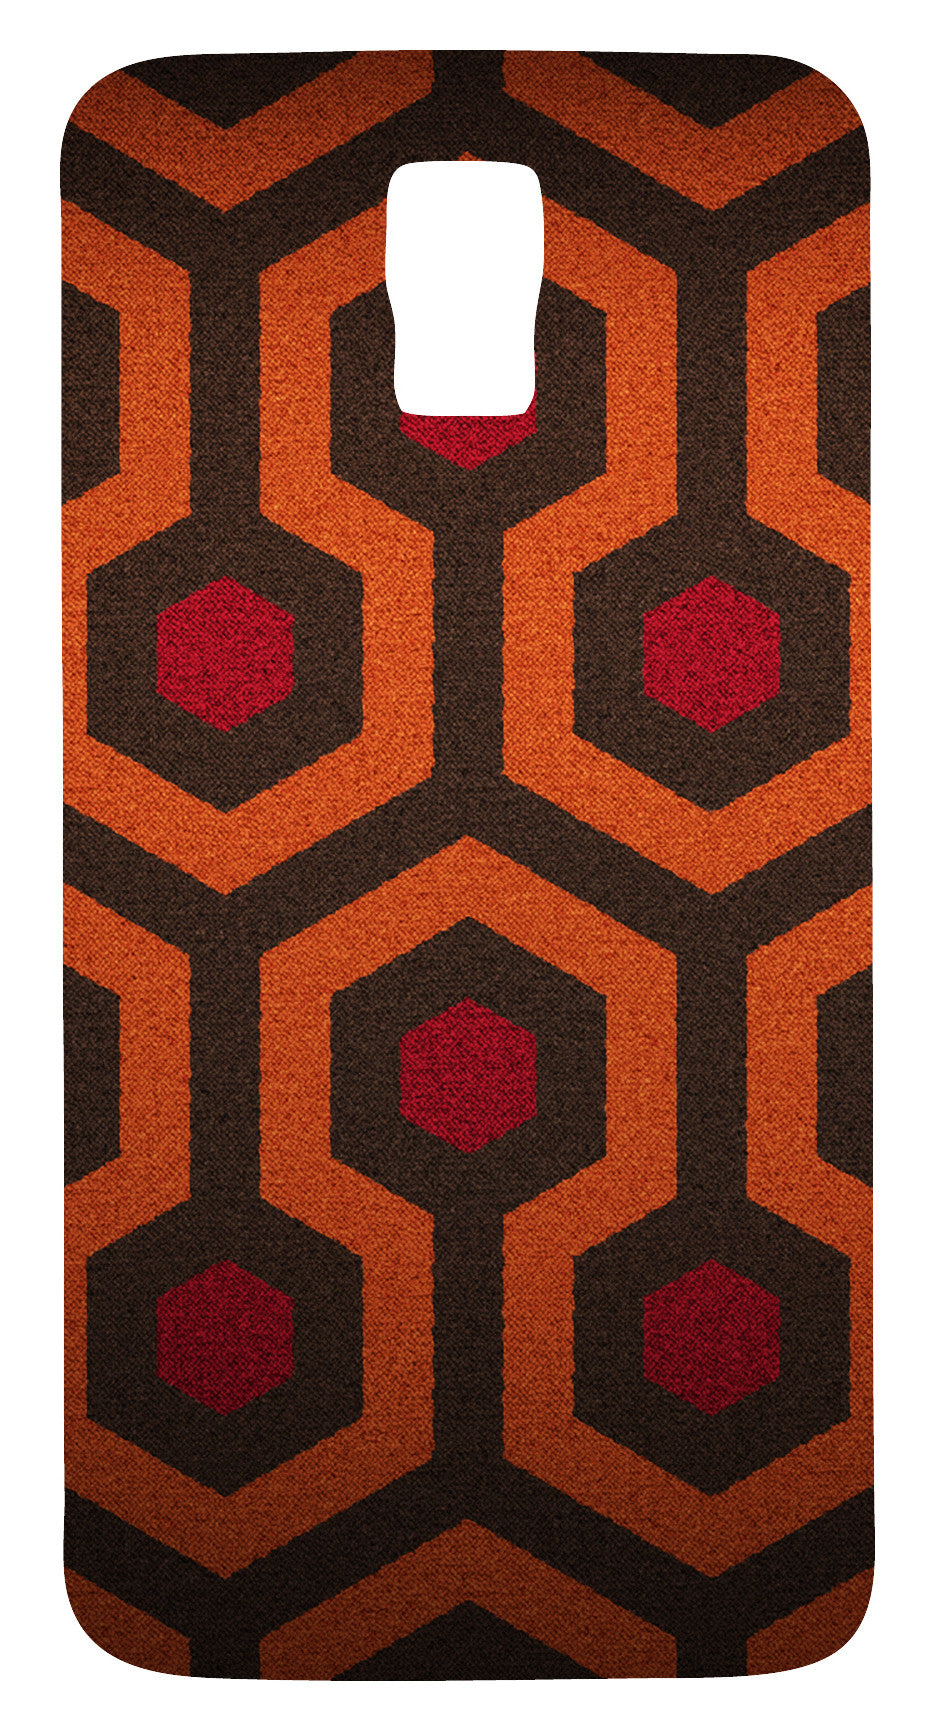 The Shining Overlook Hotel S5 Phone Case